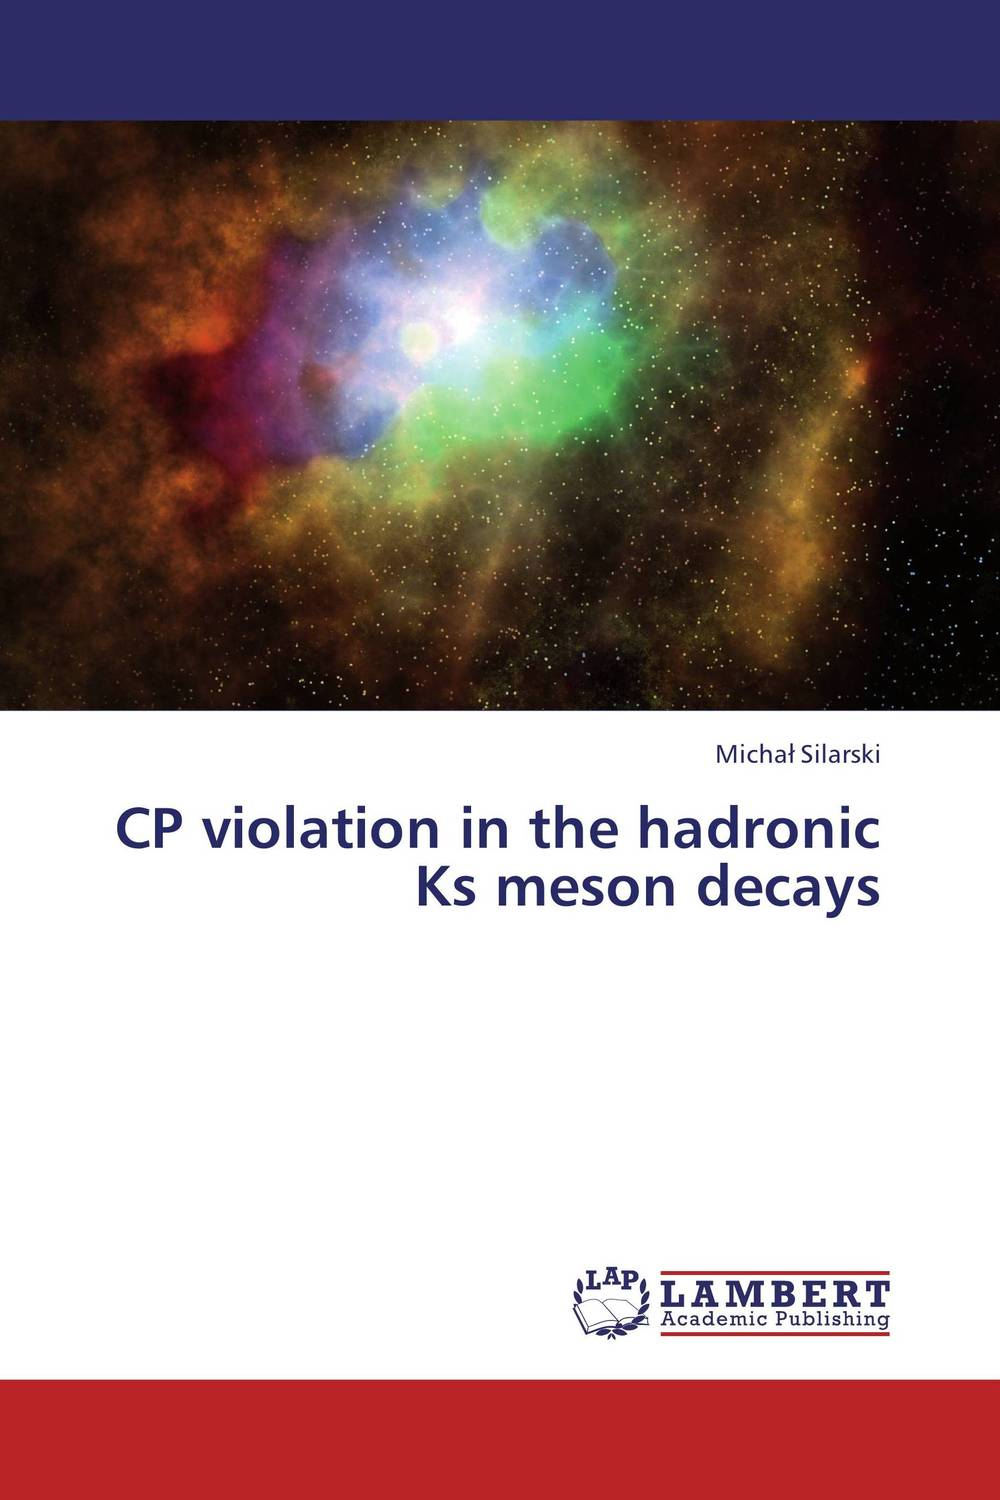 CP violation in the hadronic Ks meson decays